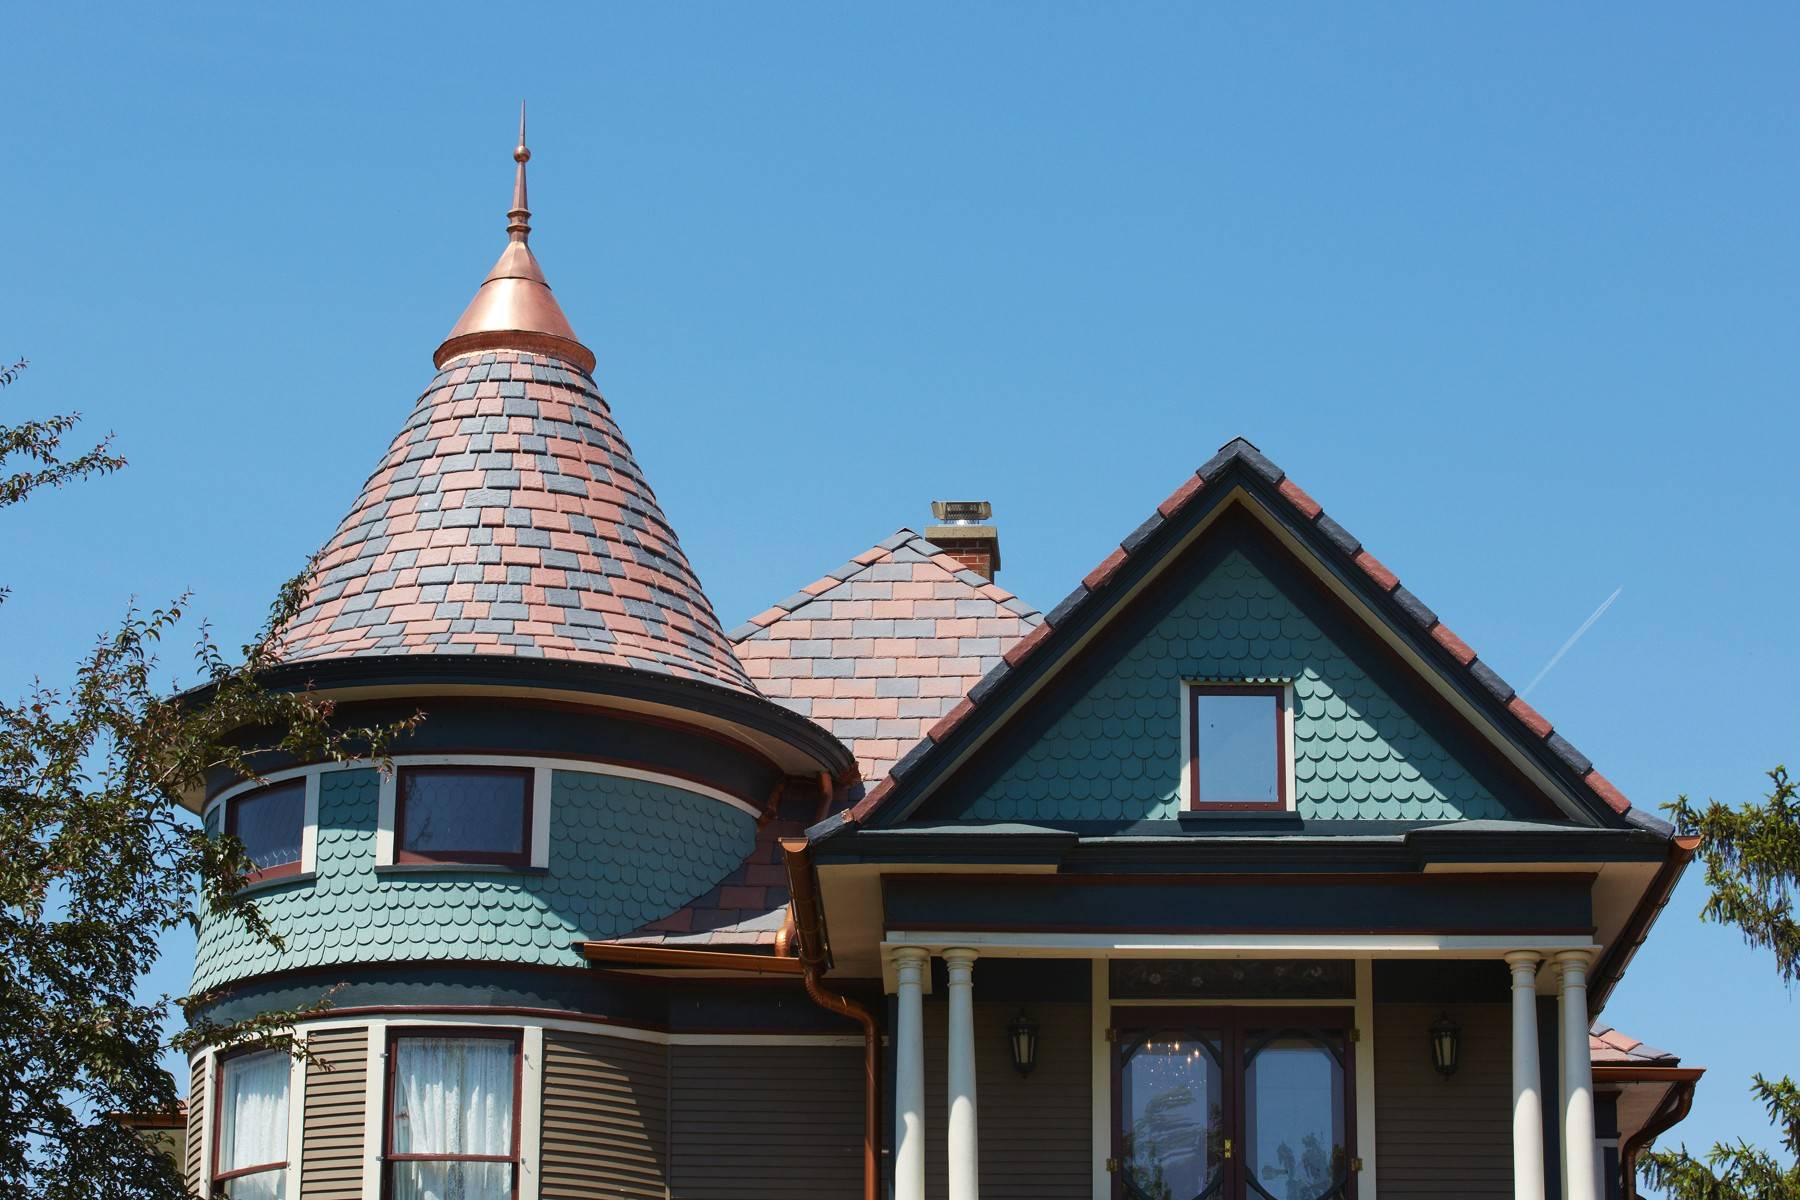 This red and gray roof replaced a storm-damaged black one at Carol and Ray Knoff's home in Vinton, Iowa. The colors are more typical of the original roofs on Victorian homes.